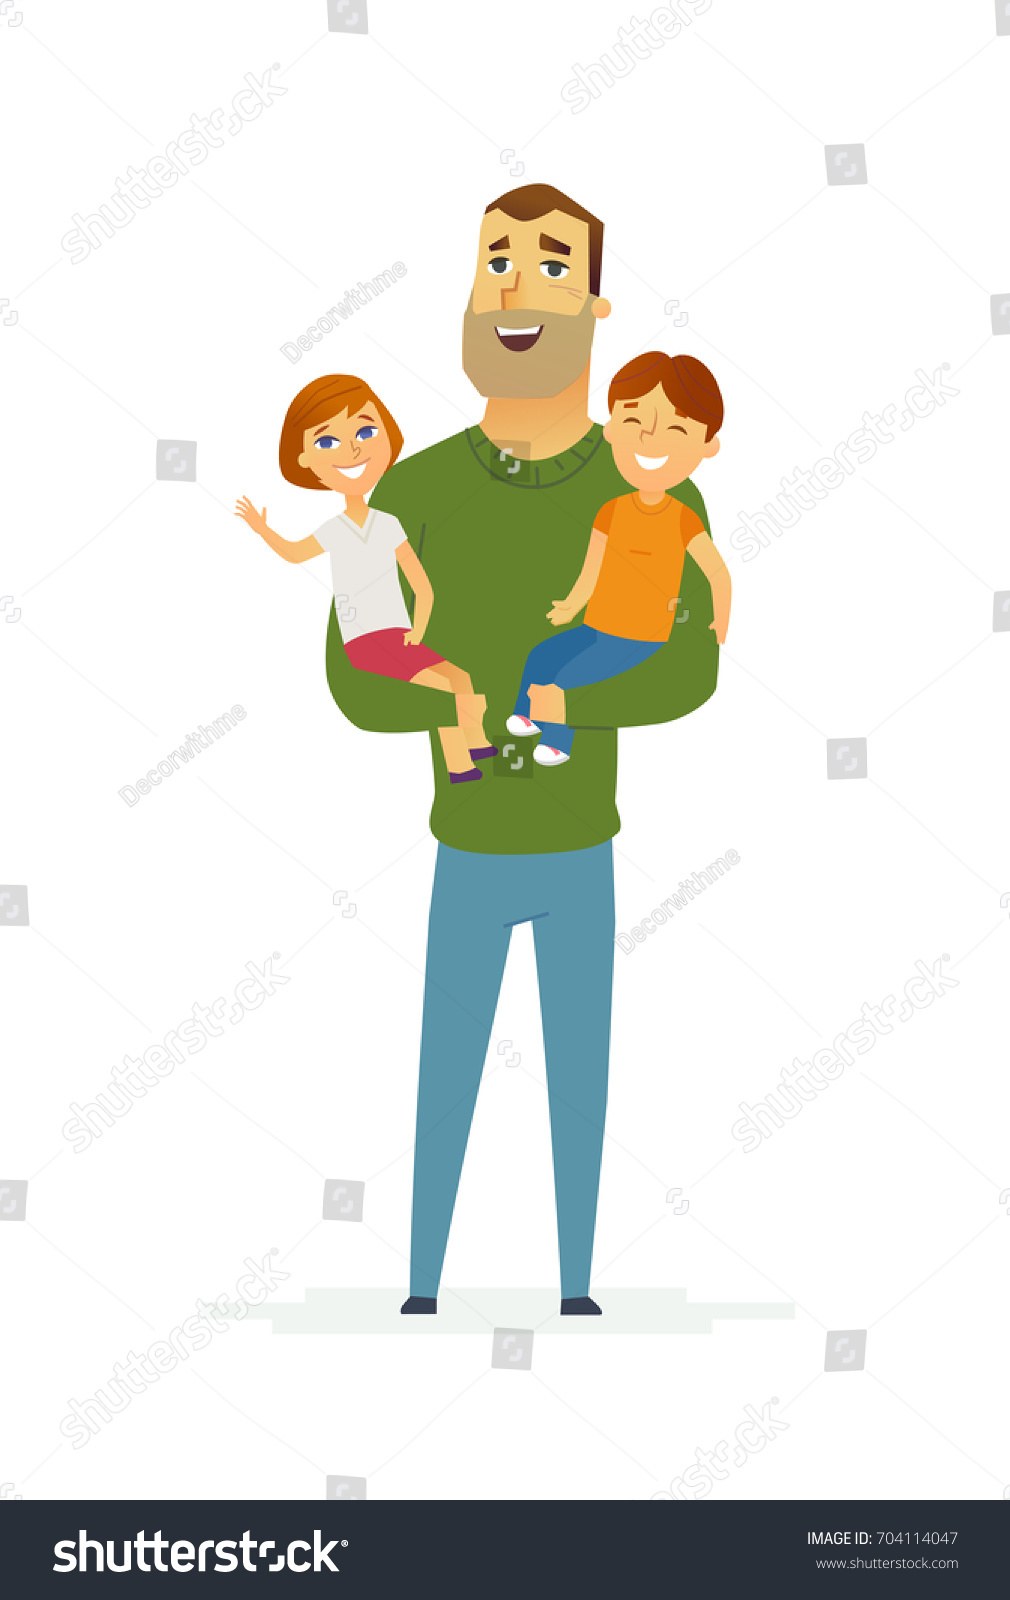 tortilla flat single parent dating site Being a single parent dating has its own challenges as a parent, you understand how your relationship with your child plays into your life you need someone who understands all the love, time, and dedication you put into your child.